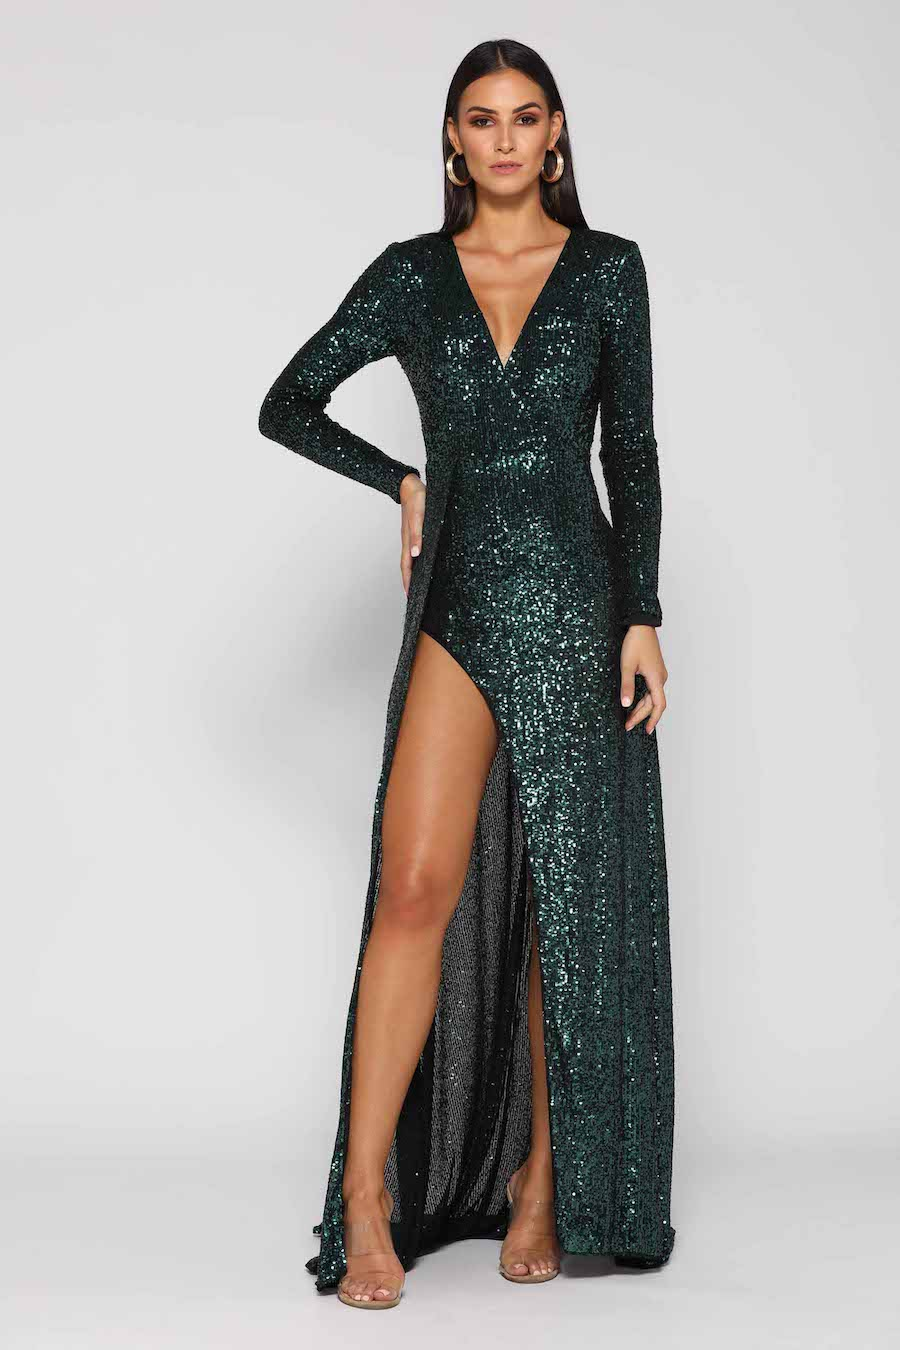 Stunning V neck long sleeve sequinned gown with high split.